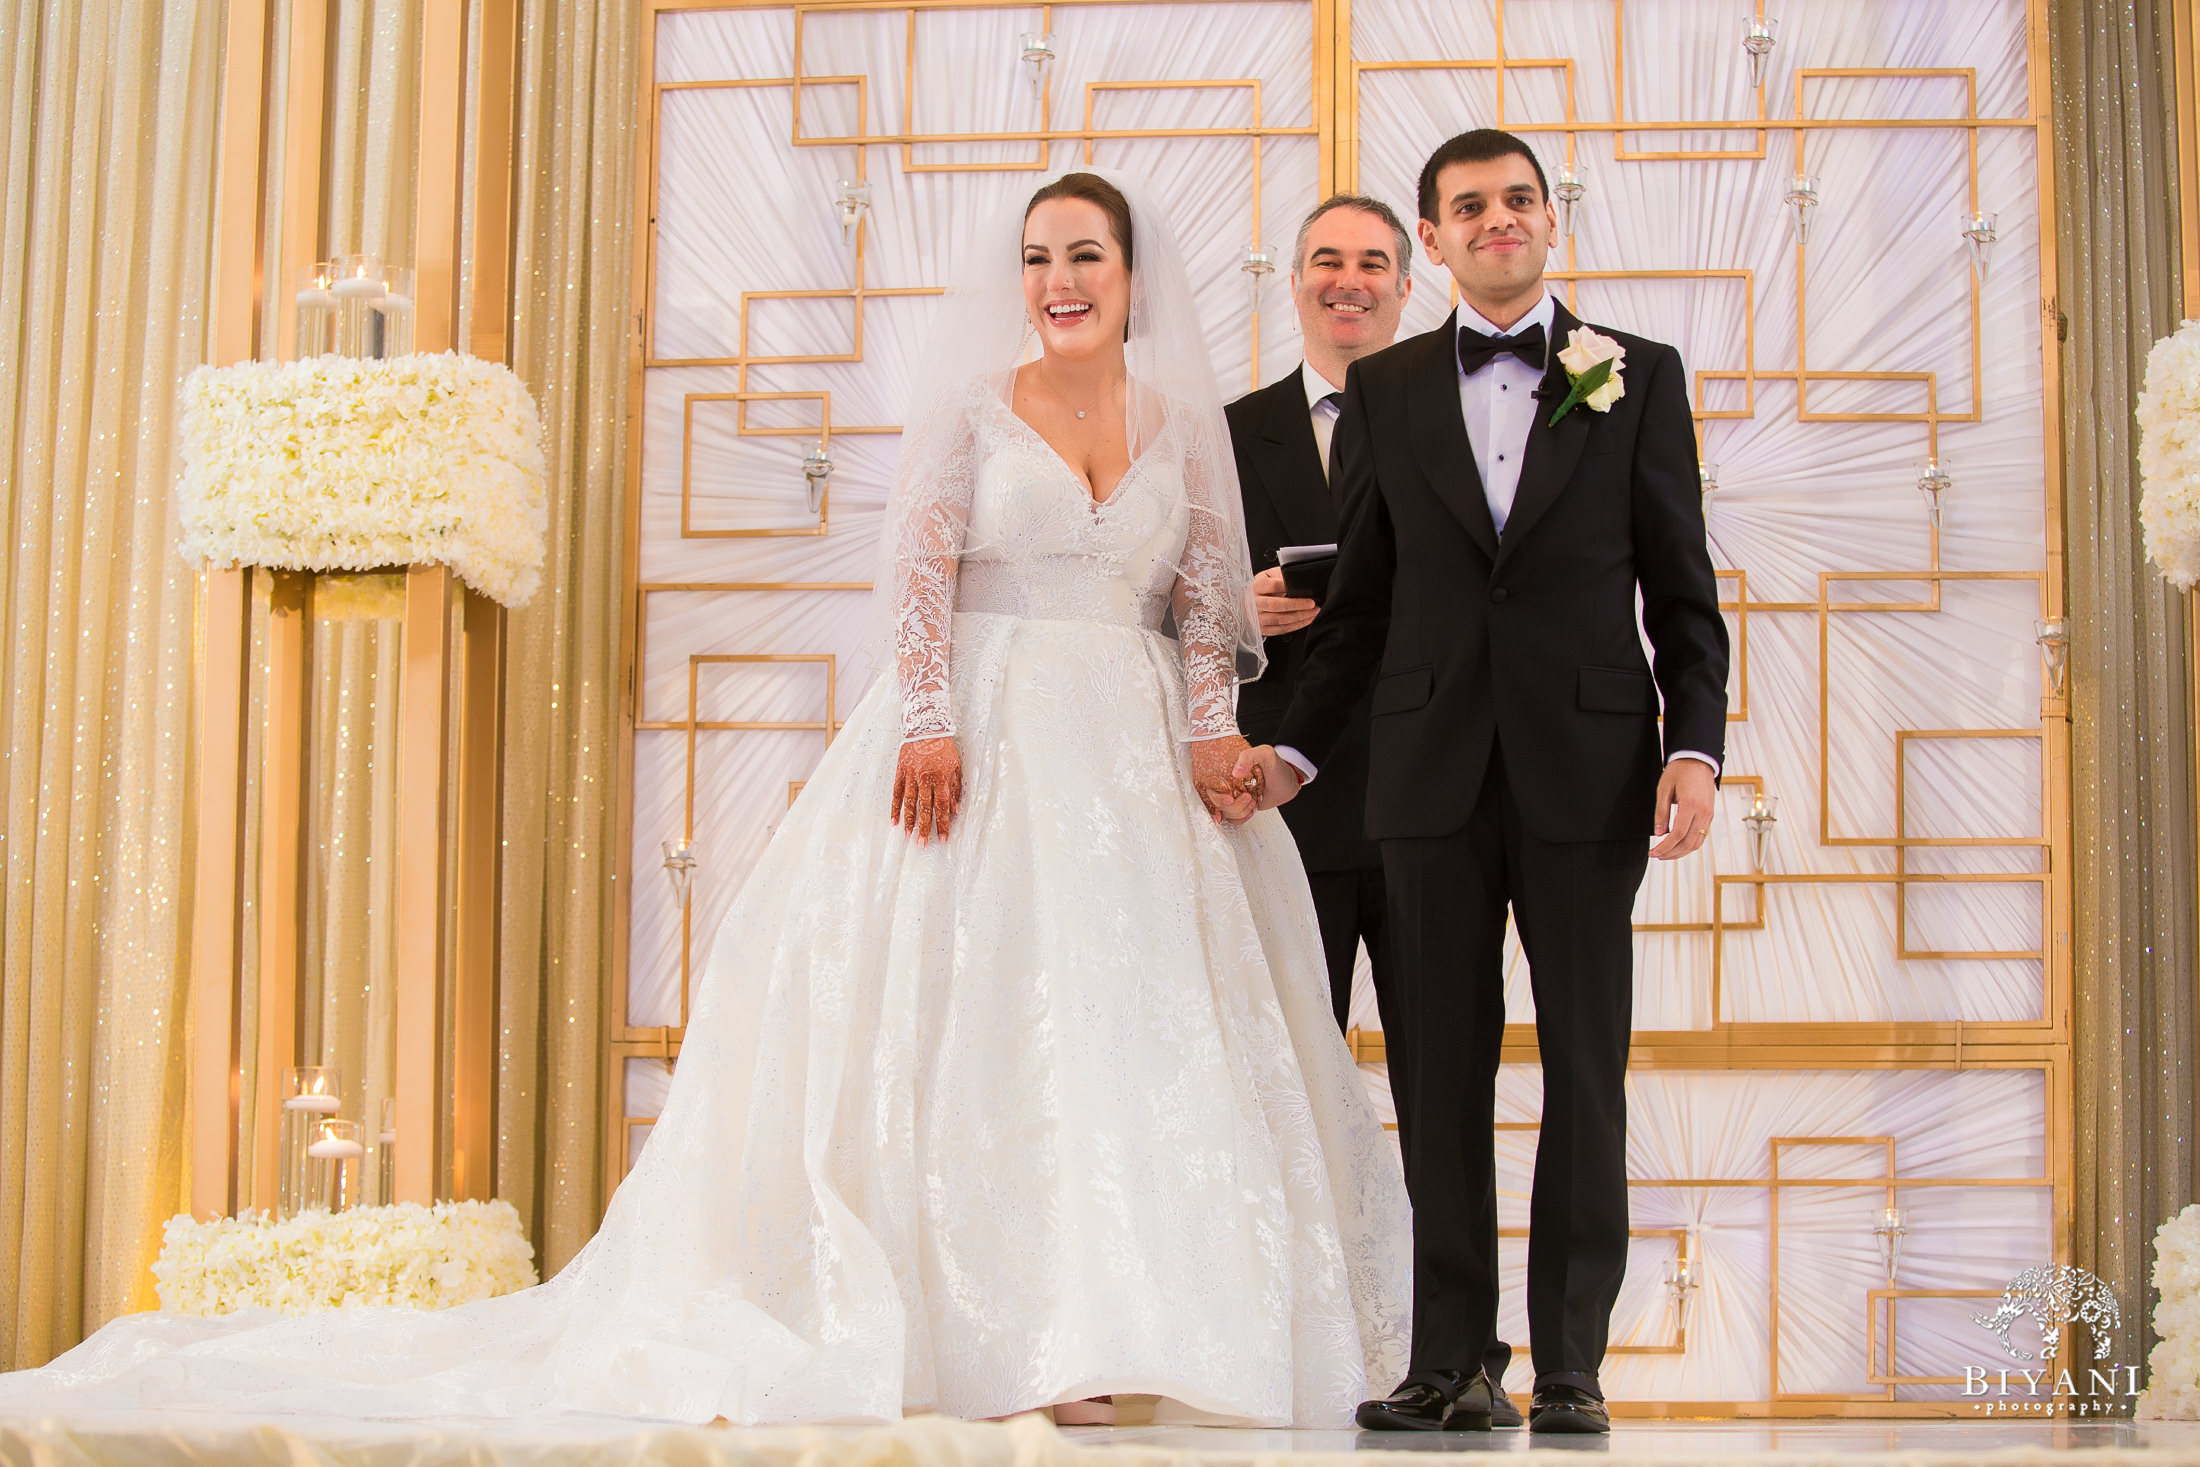 Bride and Groom at the alter of the American ceremony